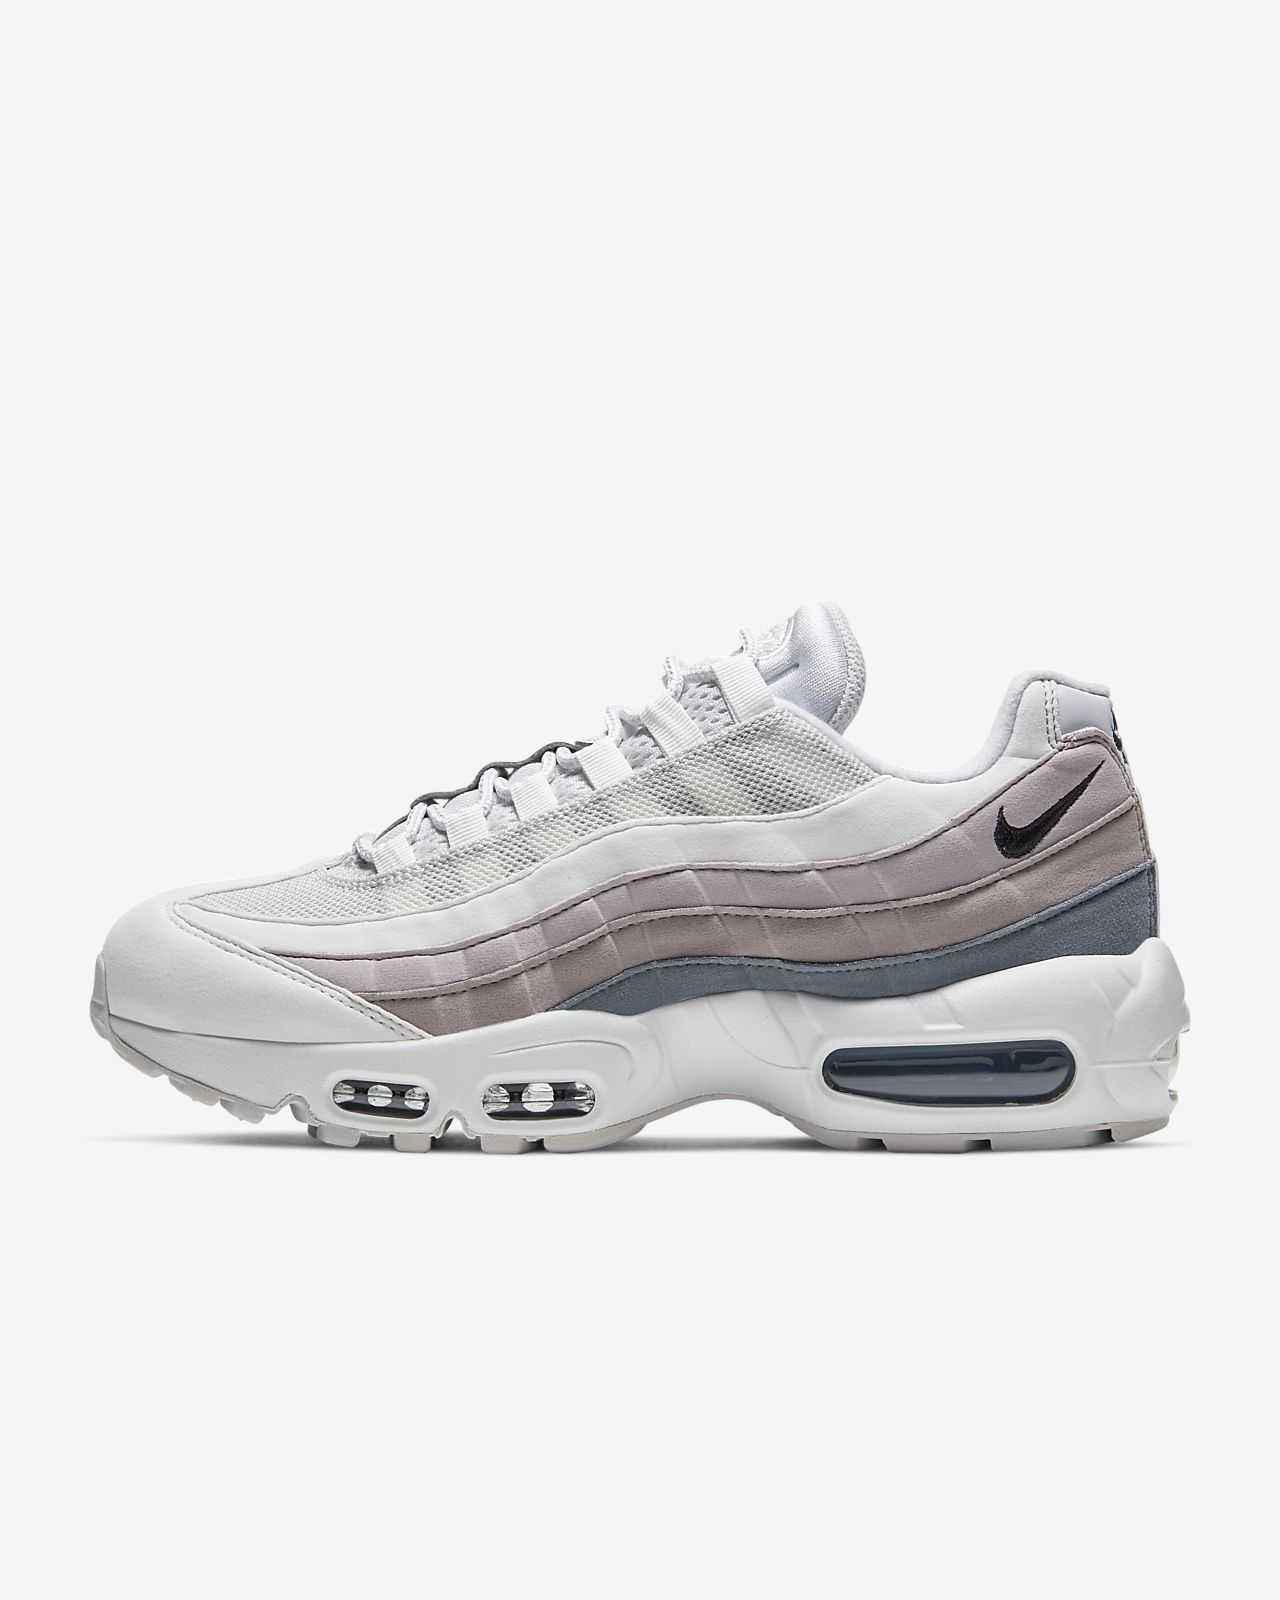 the best attitude 85978 7aa03 ... Chaussure Nike Air Max 95 pour Femme